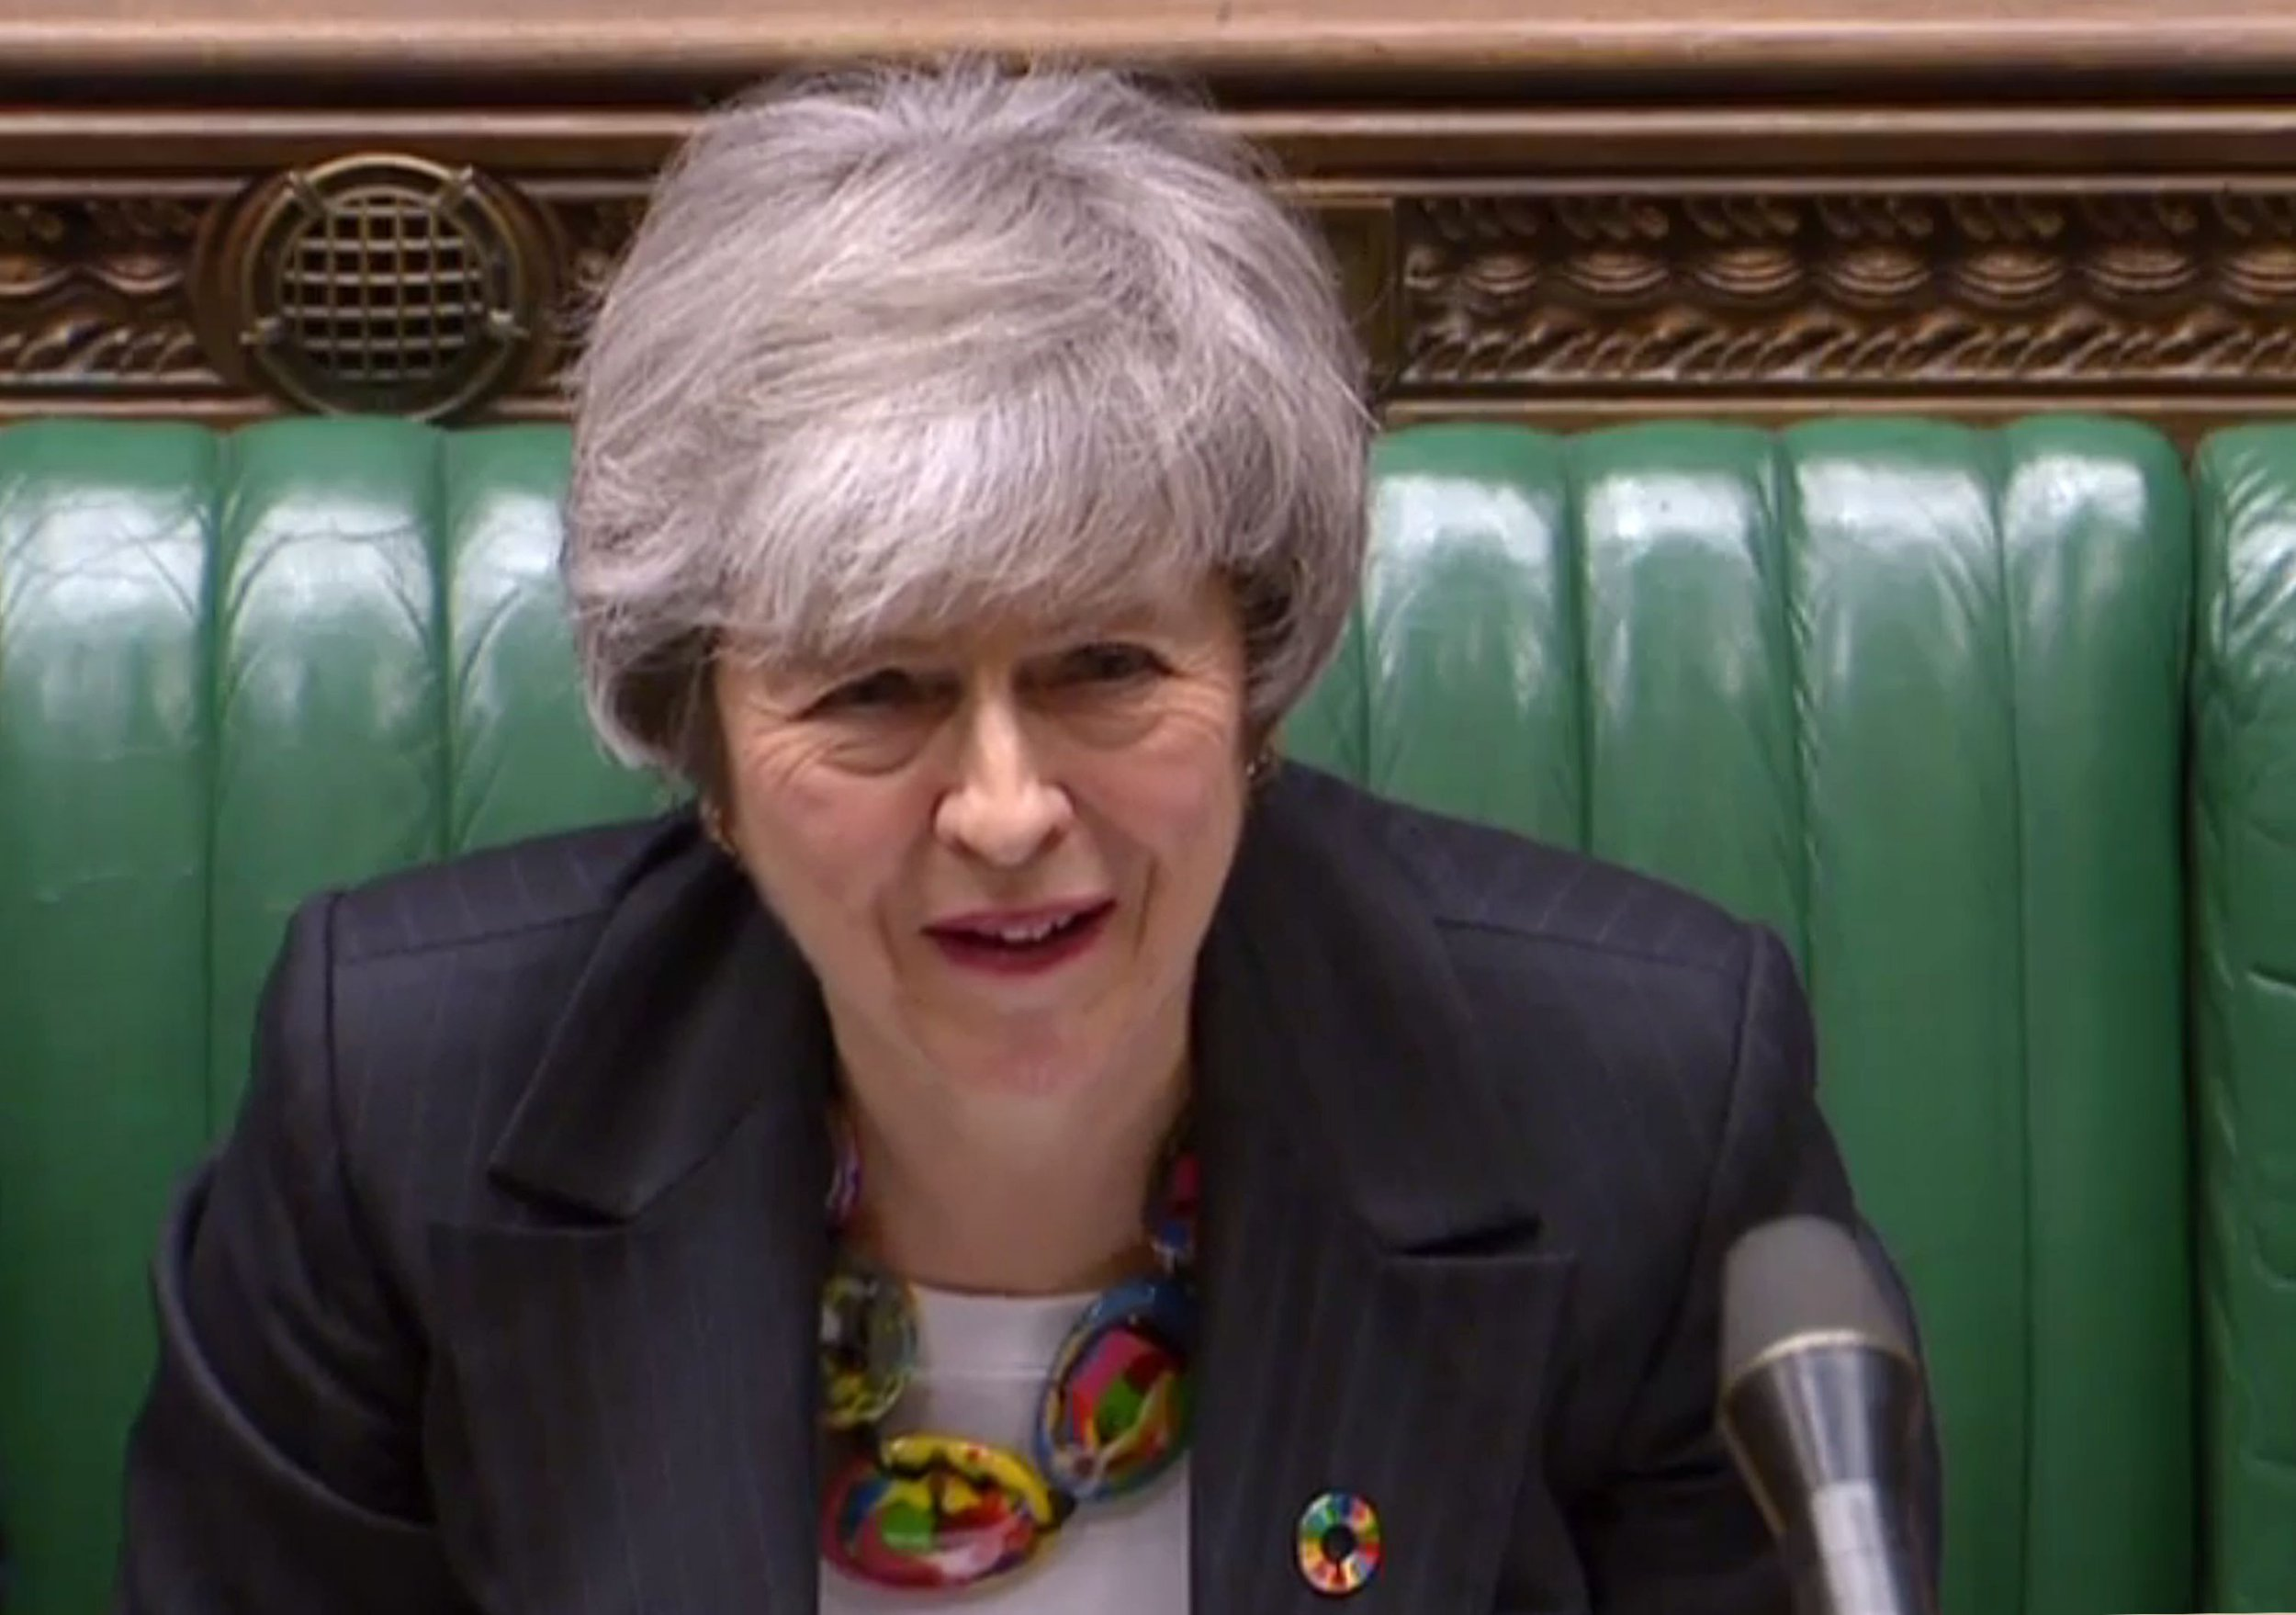 "A video grab from footage broadcast by the UK Parliament's Parliamentary Recording Unit (PRU) shows Britain's Prime Minister Theresa May listening to a reply by opposition leader Jeremy Corbyn to her statement on Brexit in the House of Commons in London on February 12, 2019. - May updated parliament on her latest meetings in Brussels and Dublin aimed at securing a divorce agreement with the EU, with Britain due to leave the bloc on March 29. (Photo by HO / PRU / AFP) / RESTRICTED TO EDITORIAL USE - MANDATORY CREDIT "" AFP PHOTO / PRU "" - NO USE FOR ENTERTAINMENT, SATIRICAL, MARKETING OR ADVERTISING CAMPAIGNSHO/AFP/Getty Images"